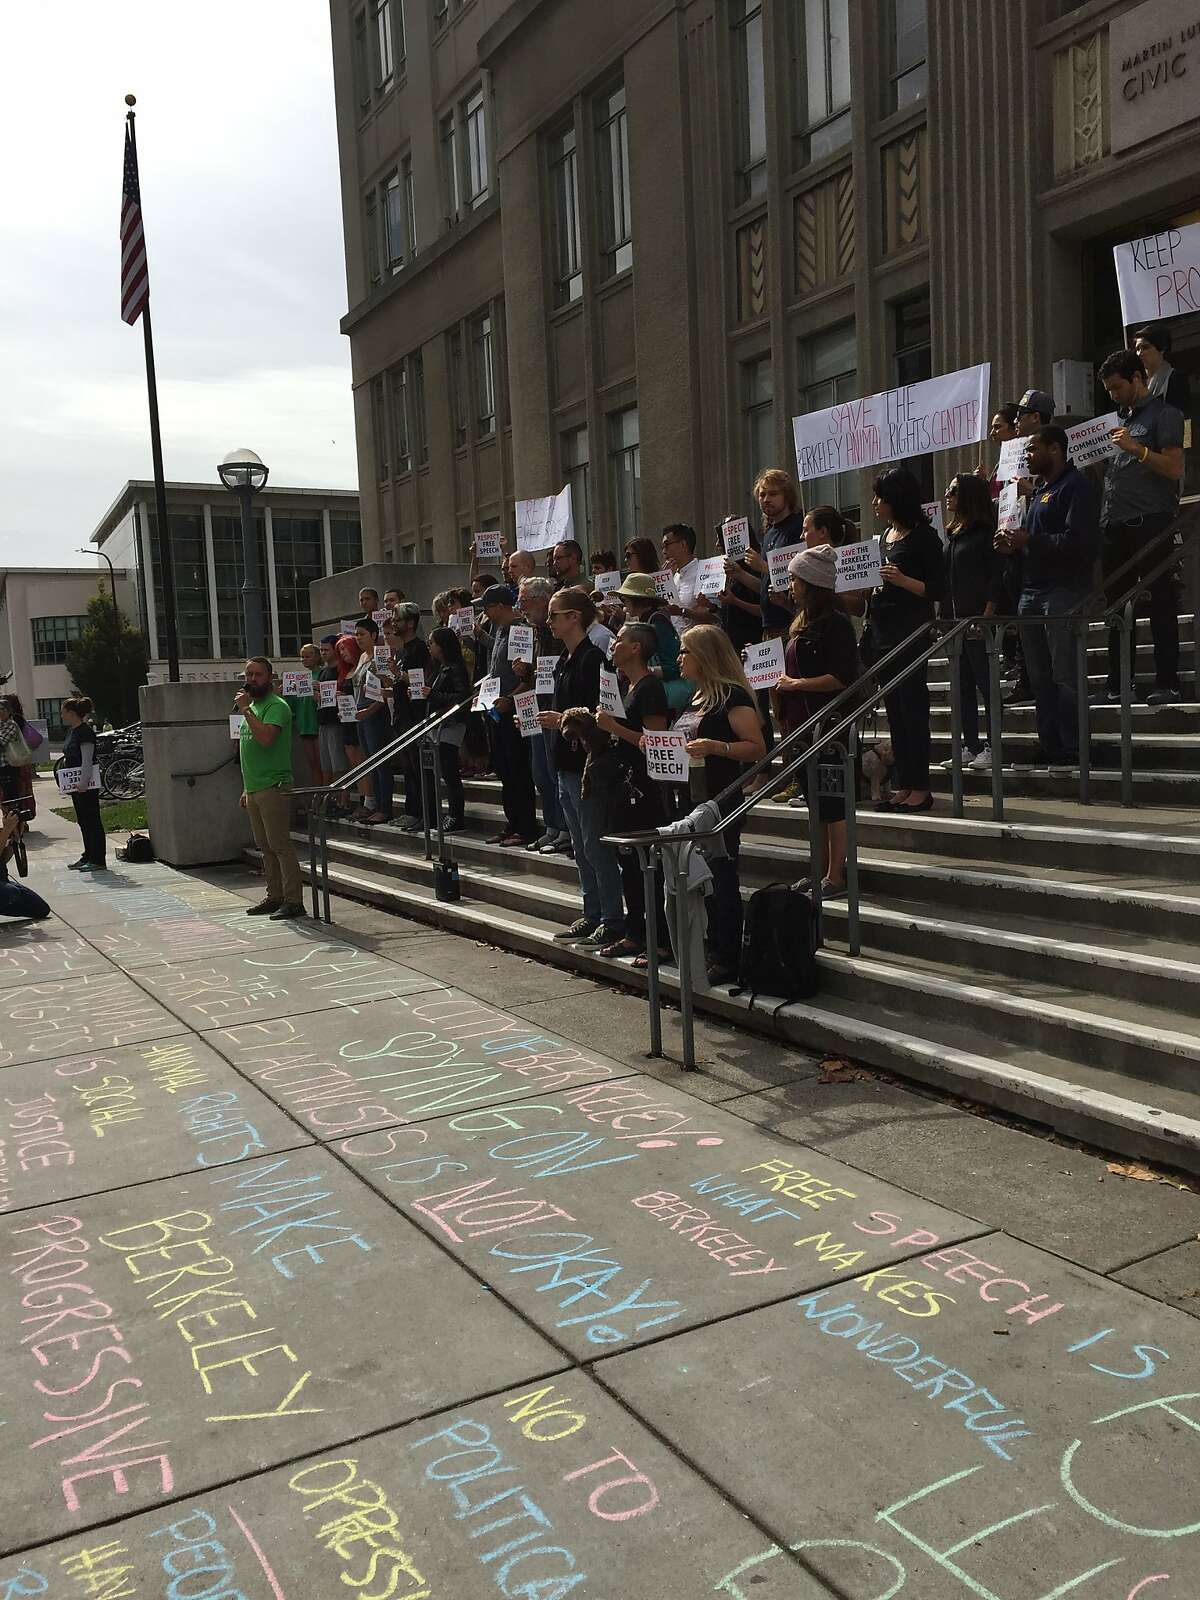 Activists protest the Berkeley Animal Rights Center's threat of eviction on the steps of City Hall in Berkeley on Thursday, Oct. 13, 2016.